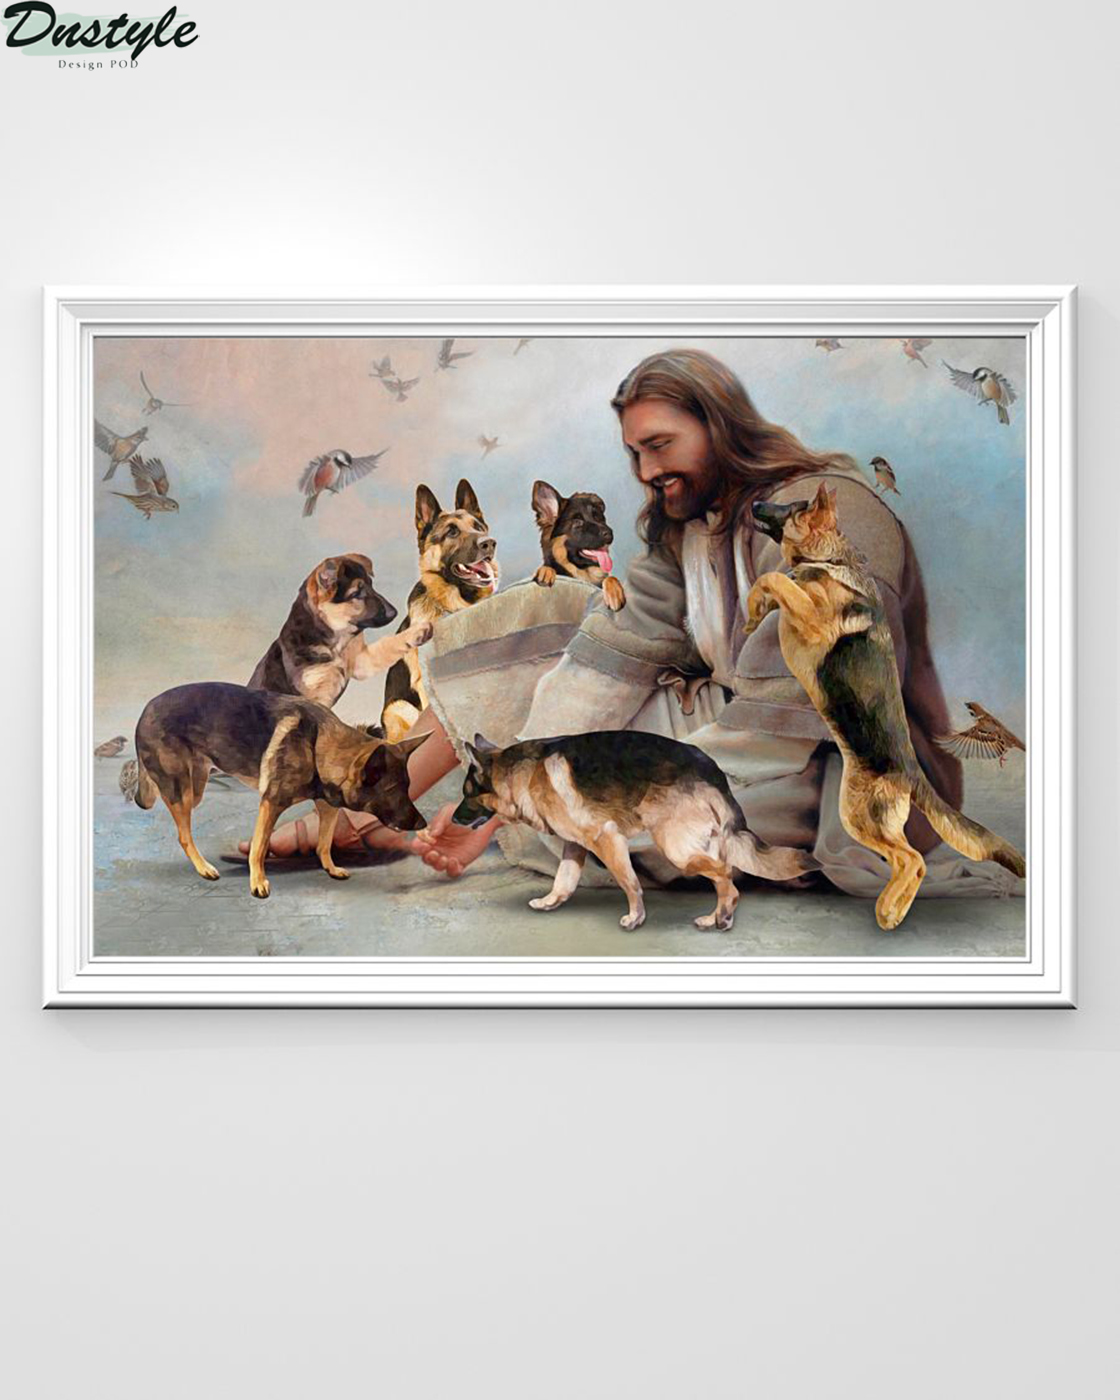 God surrounded by Malinois angels poster A1